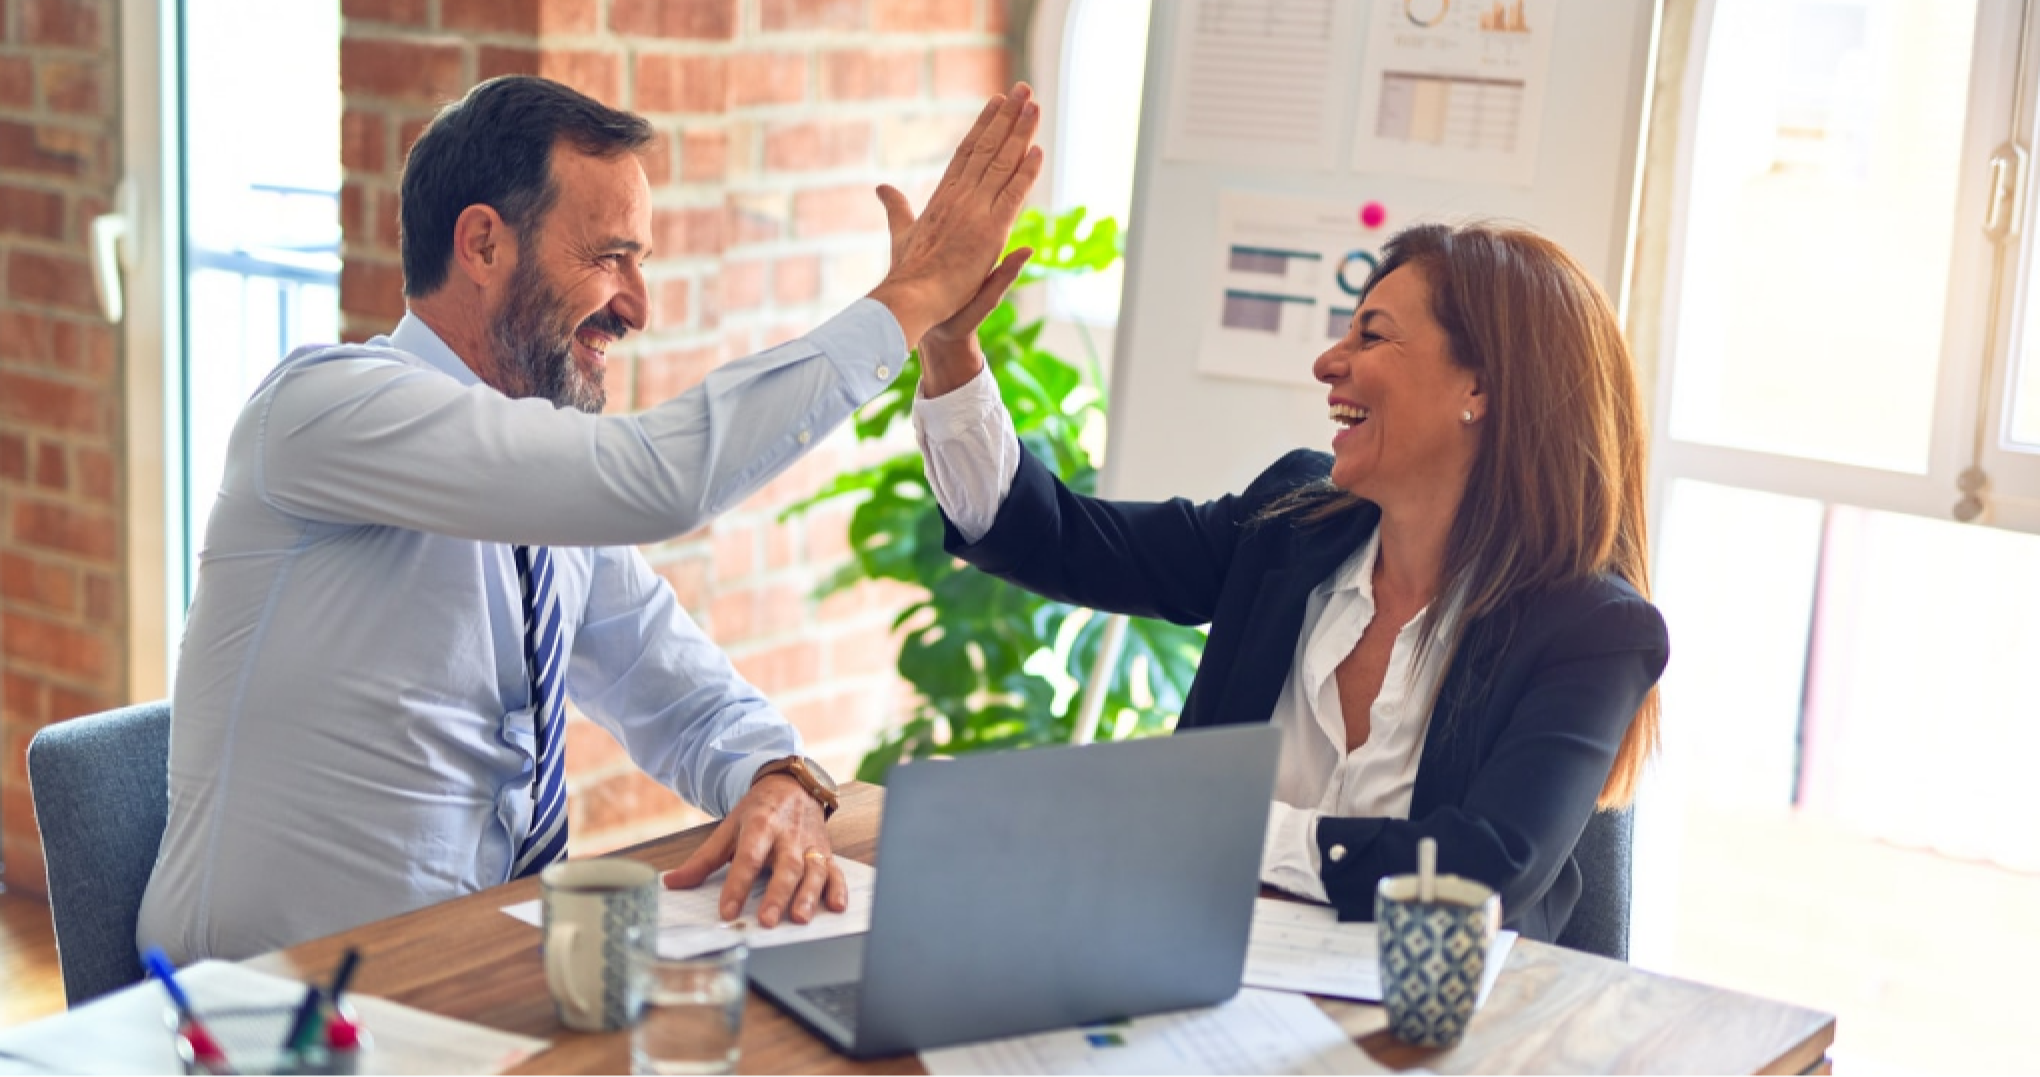 How can HR and managers work together for a better performing company?